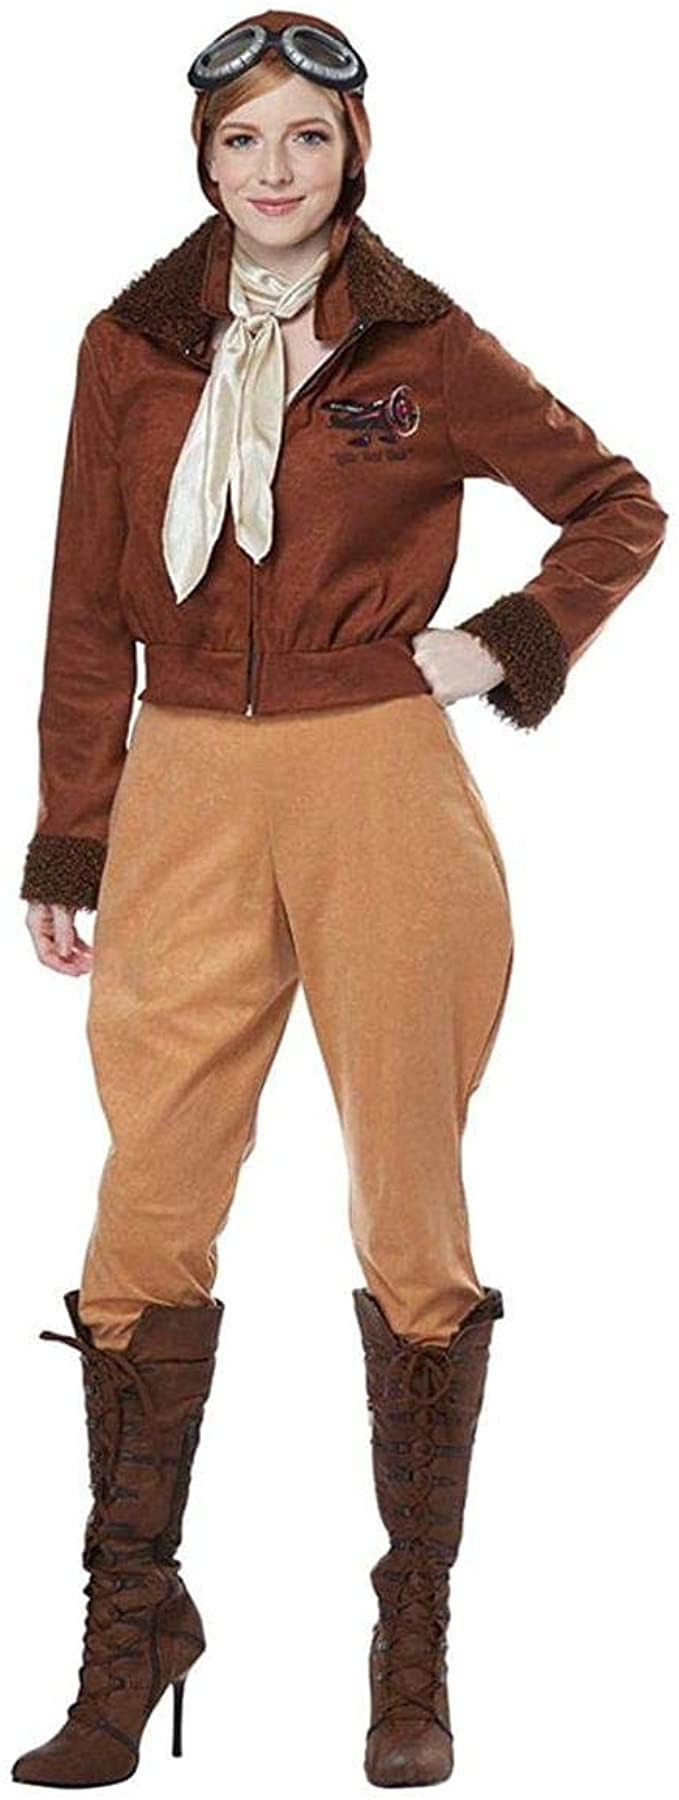 Roaring 20s Costumes- Flapper Costumes, Gangster Costumes Womens Aviator Amelia Earhart Pilot Costume Brown $44.99 AT vintagedancer.com